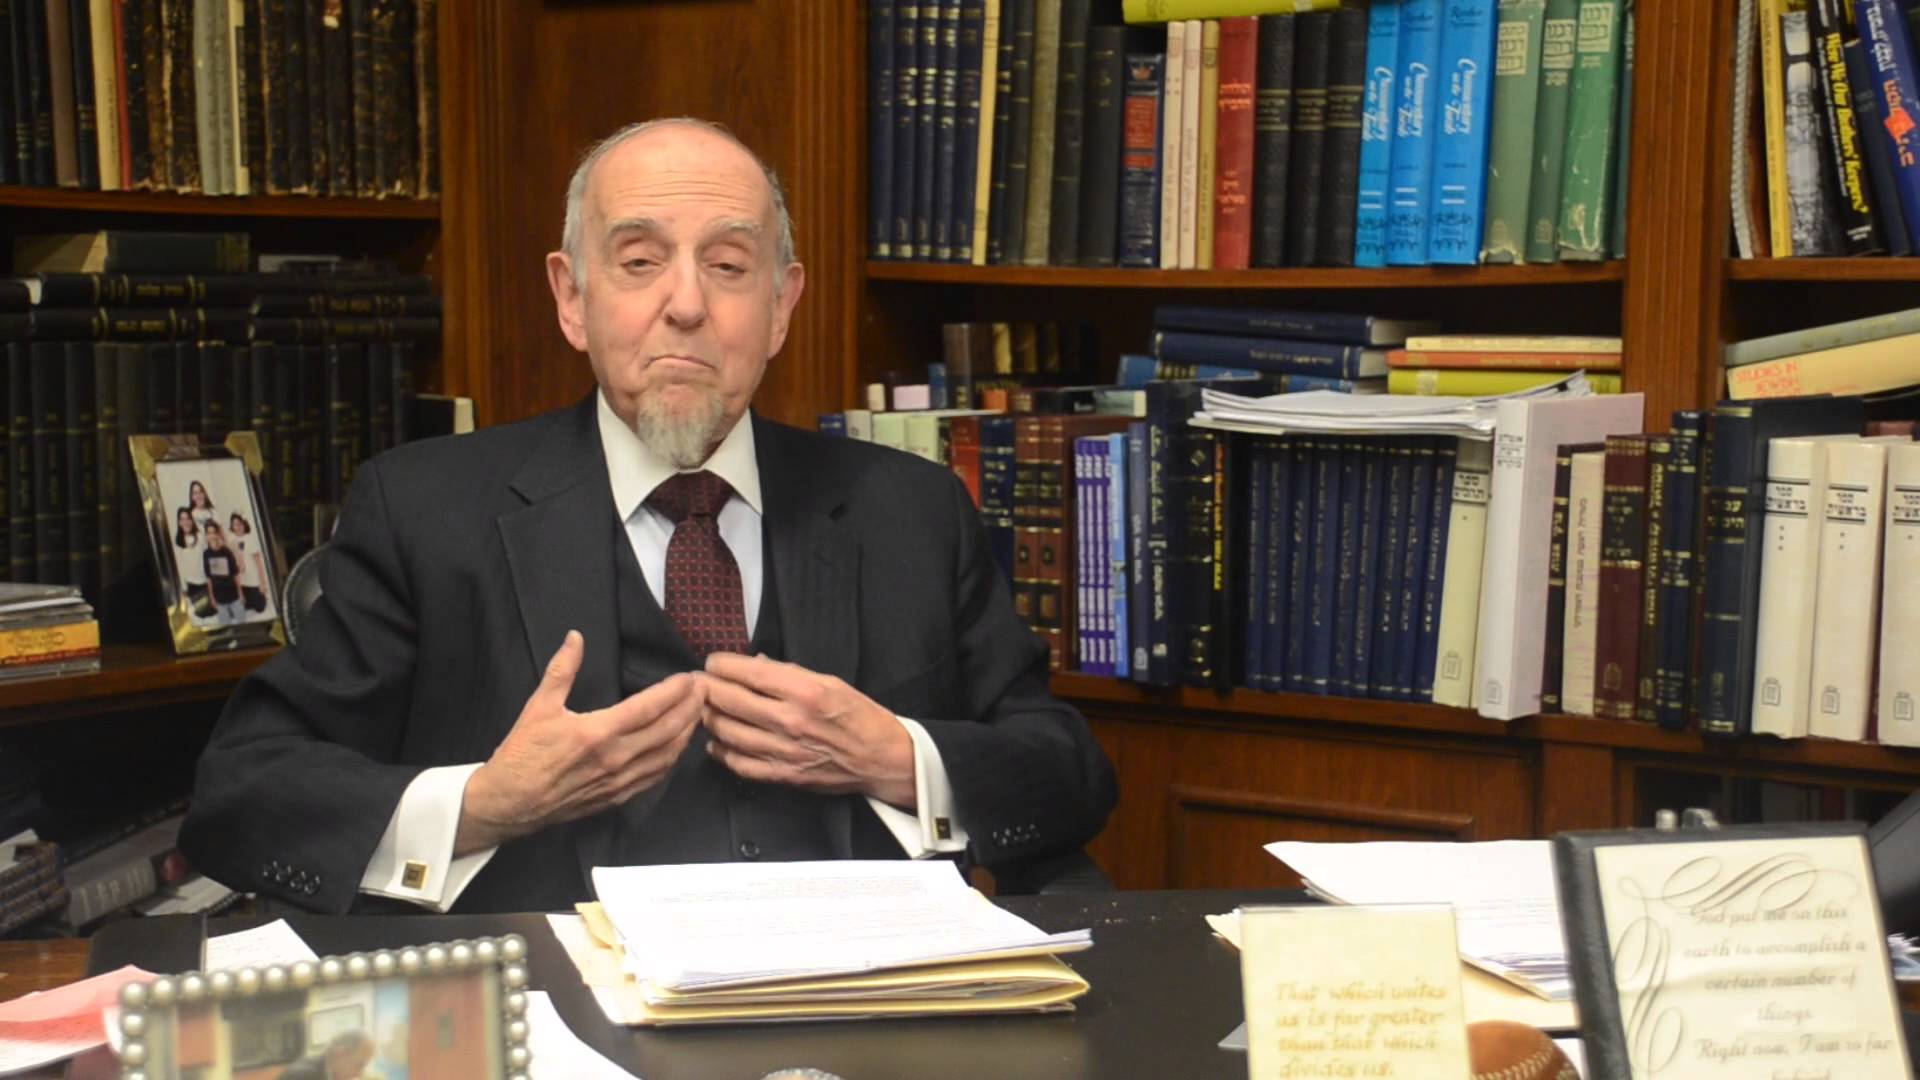 Reactions On The Rabbinical Court Denial Of Rabbi Lookstein's Conversions